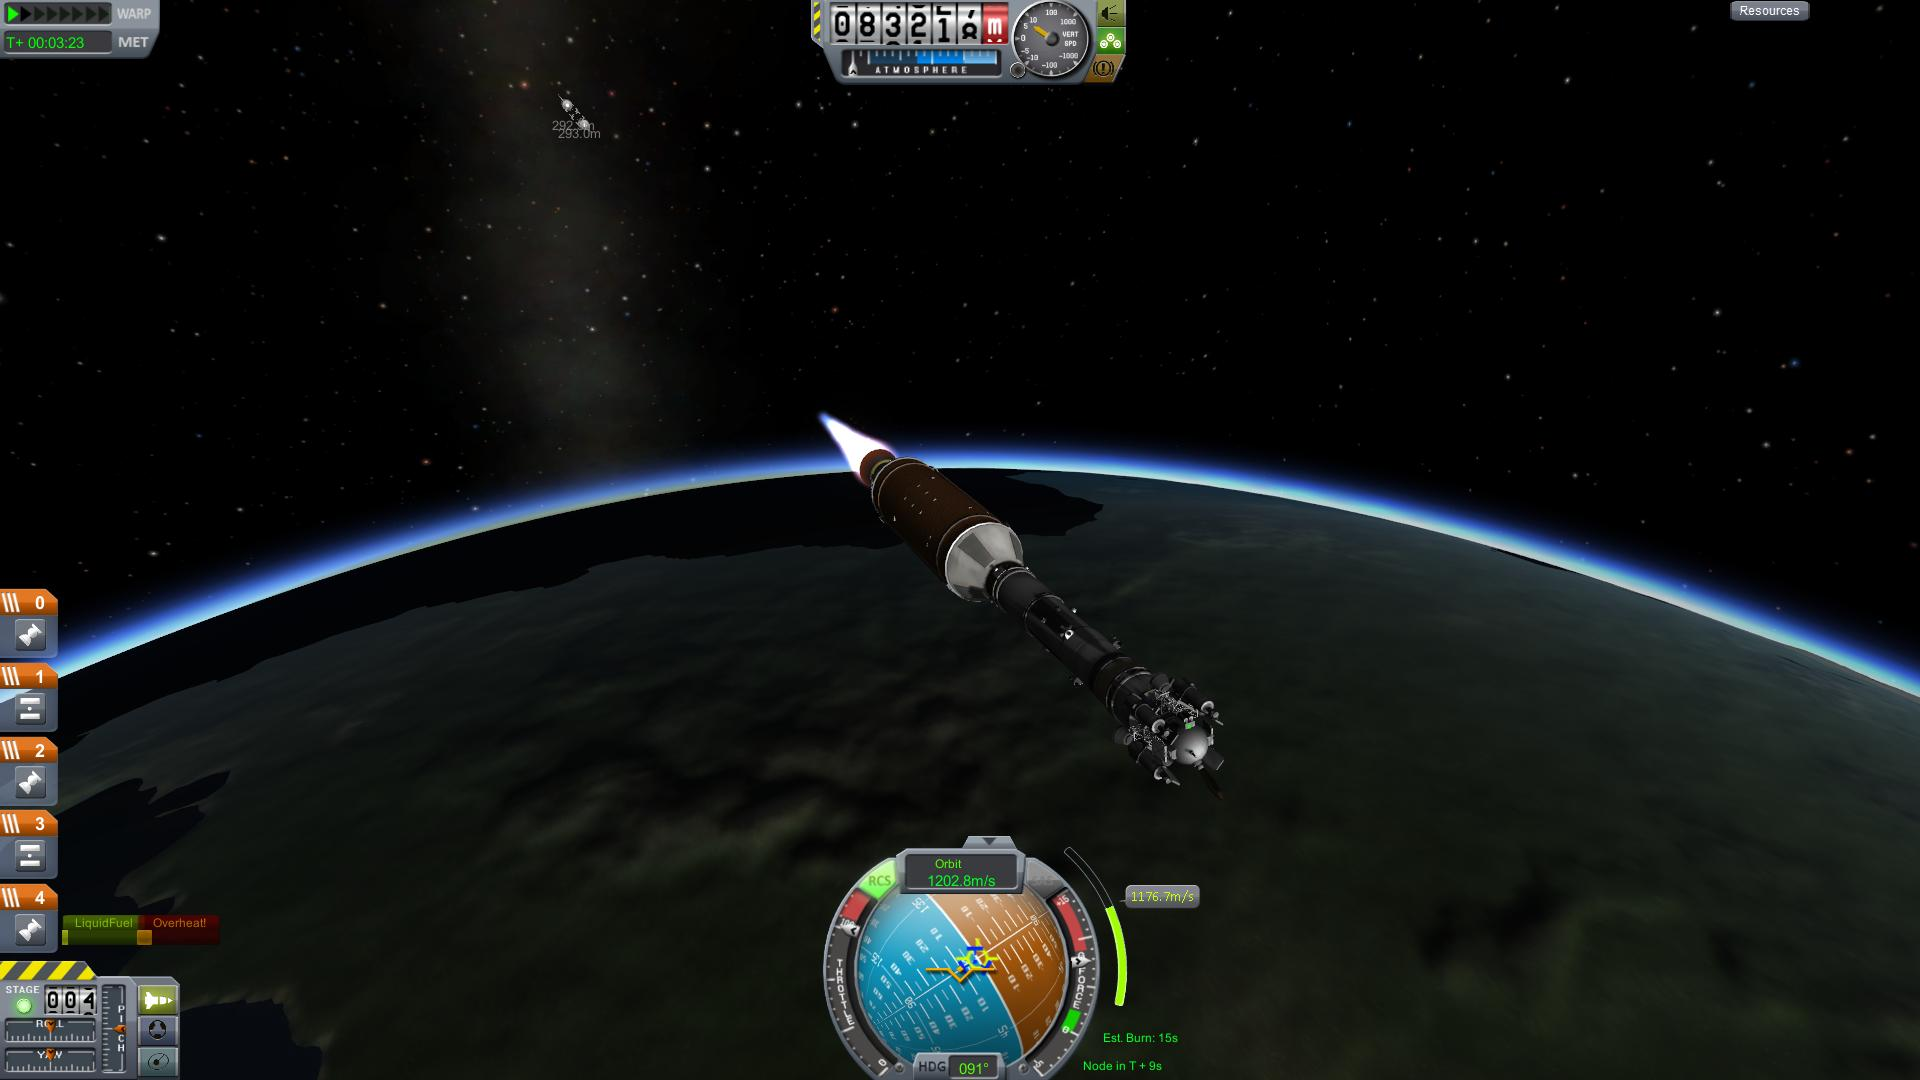 kerbal space program moon - photo #10